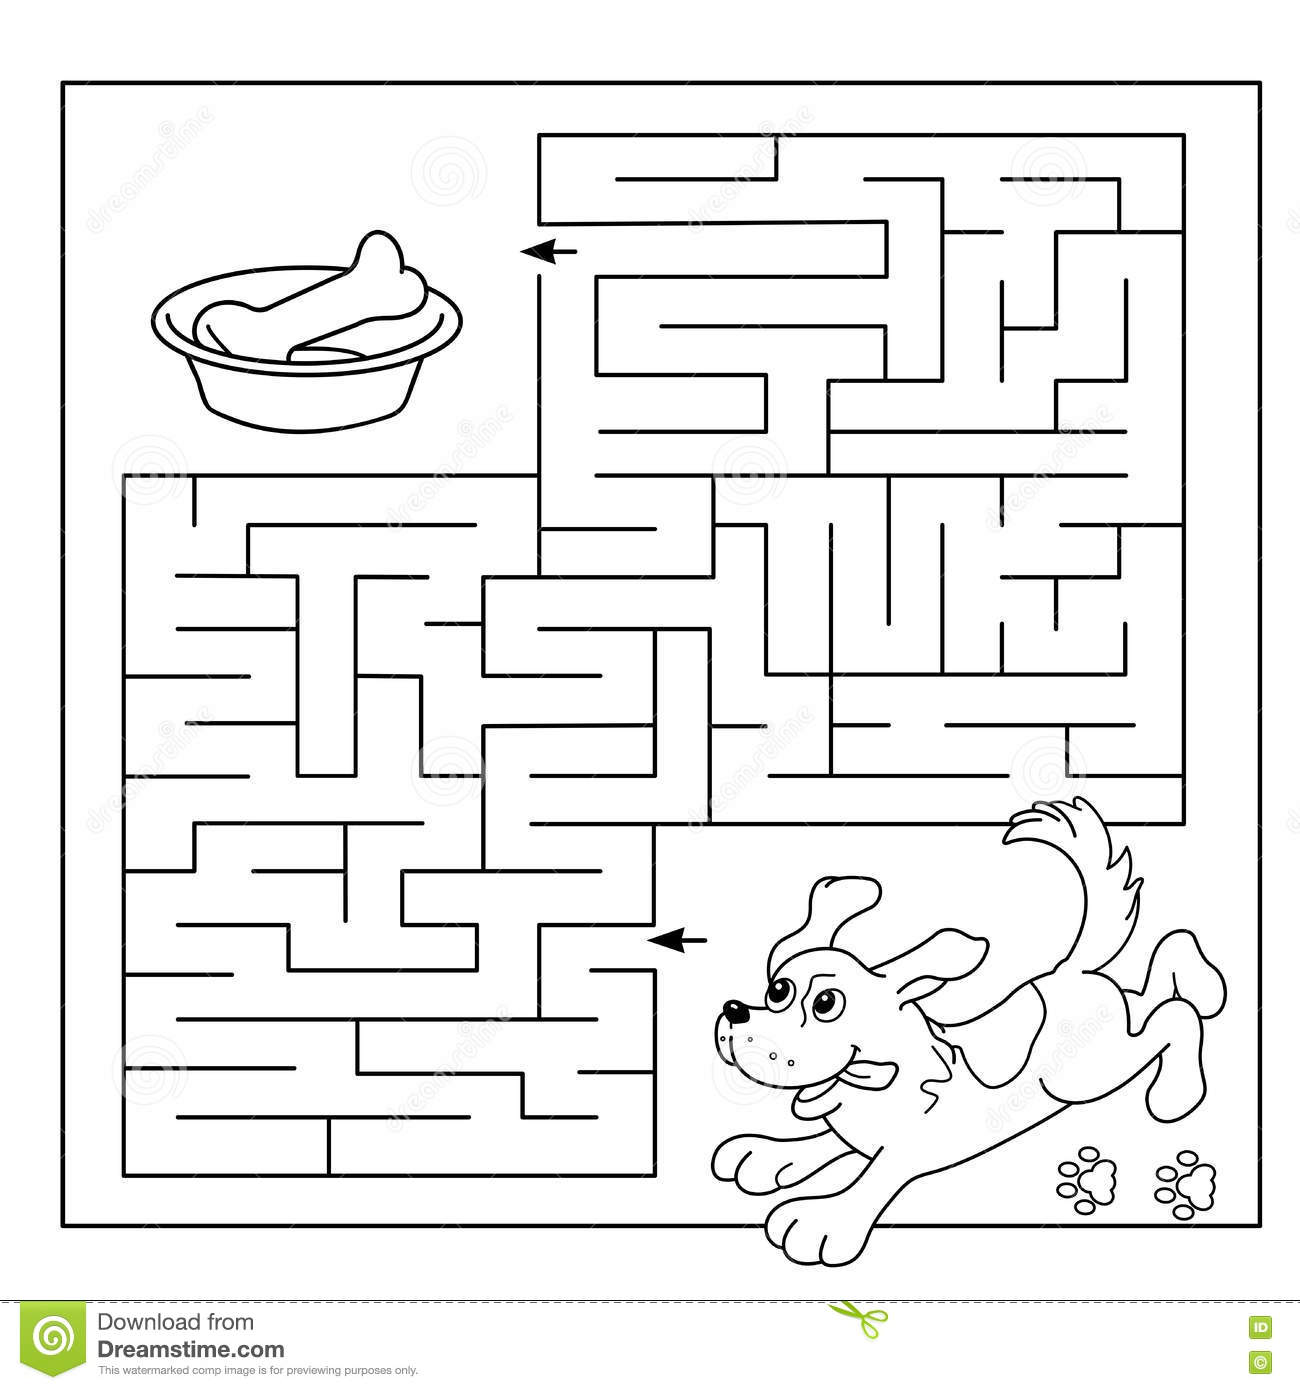 Education Maze Or Labyrinth Game For Preschool Children